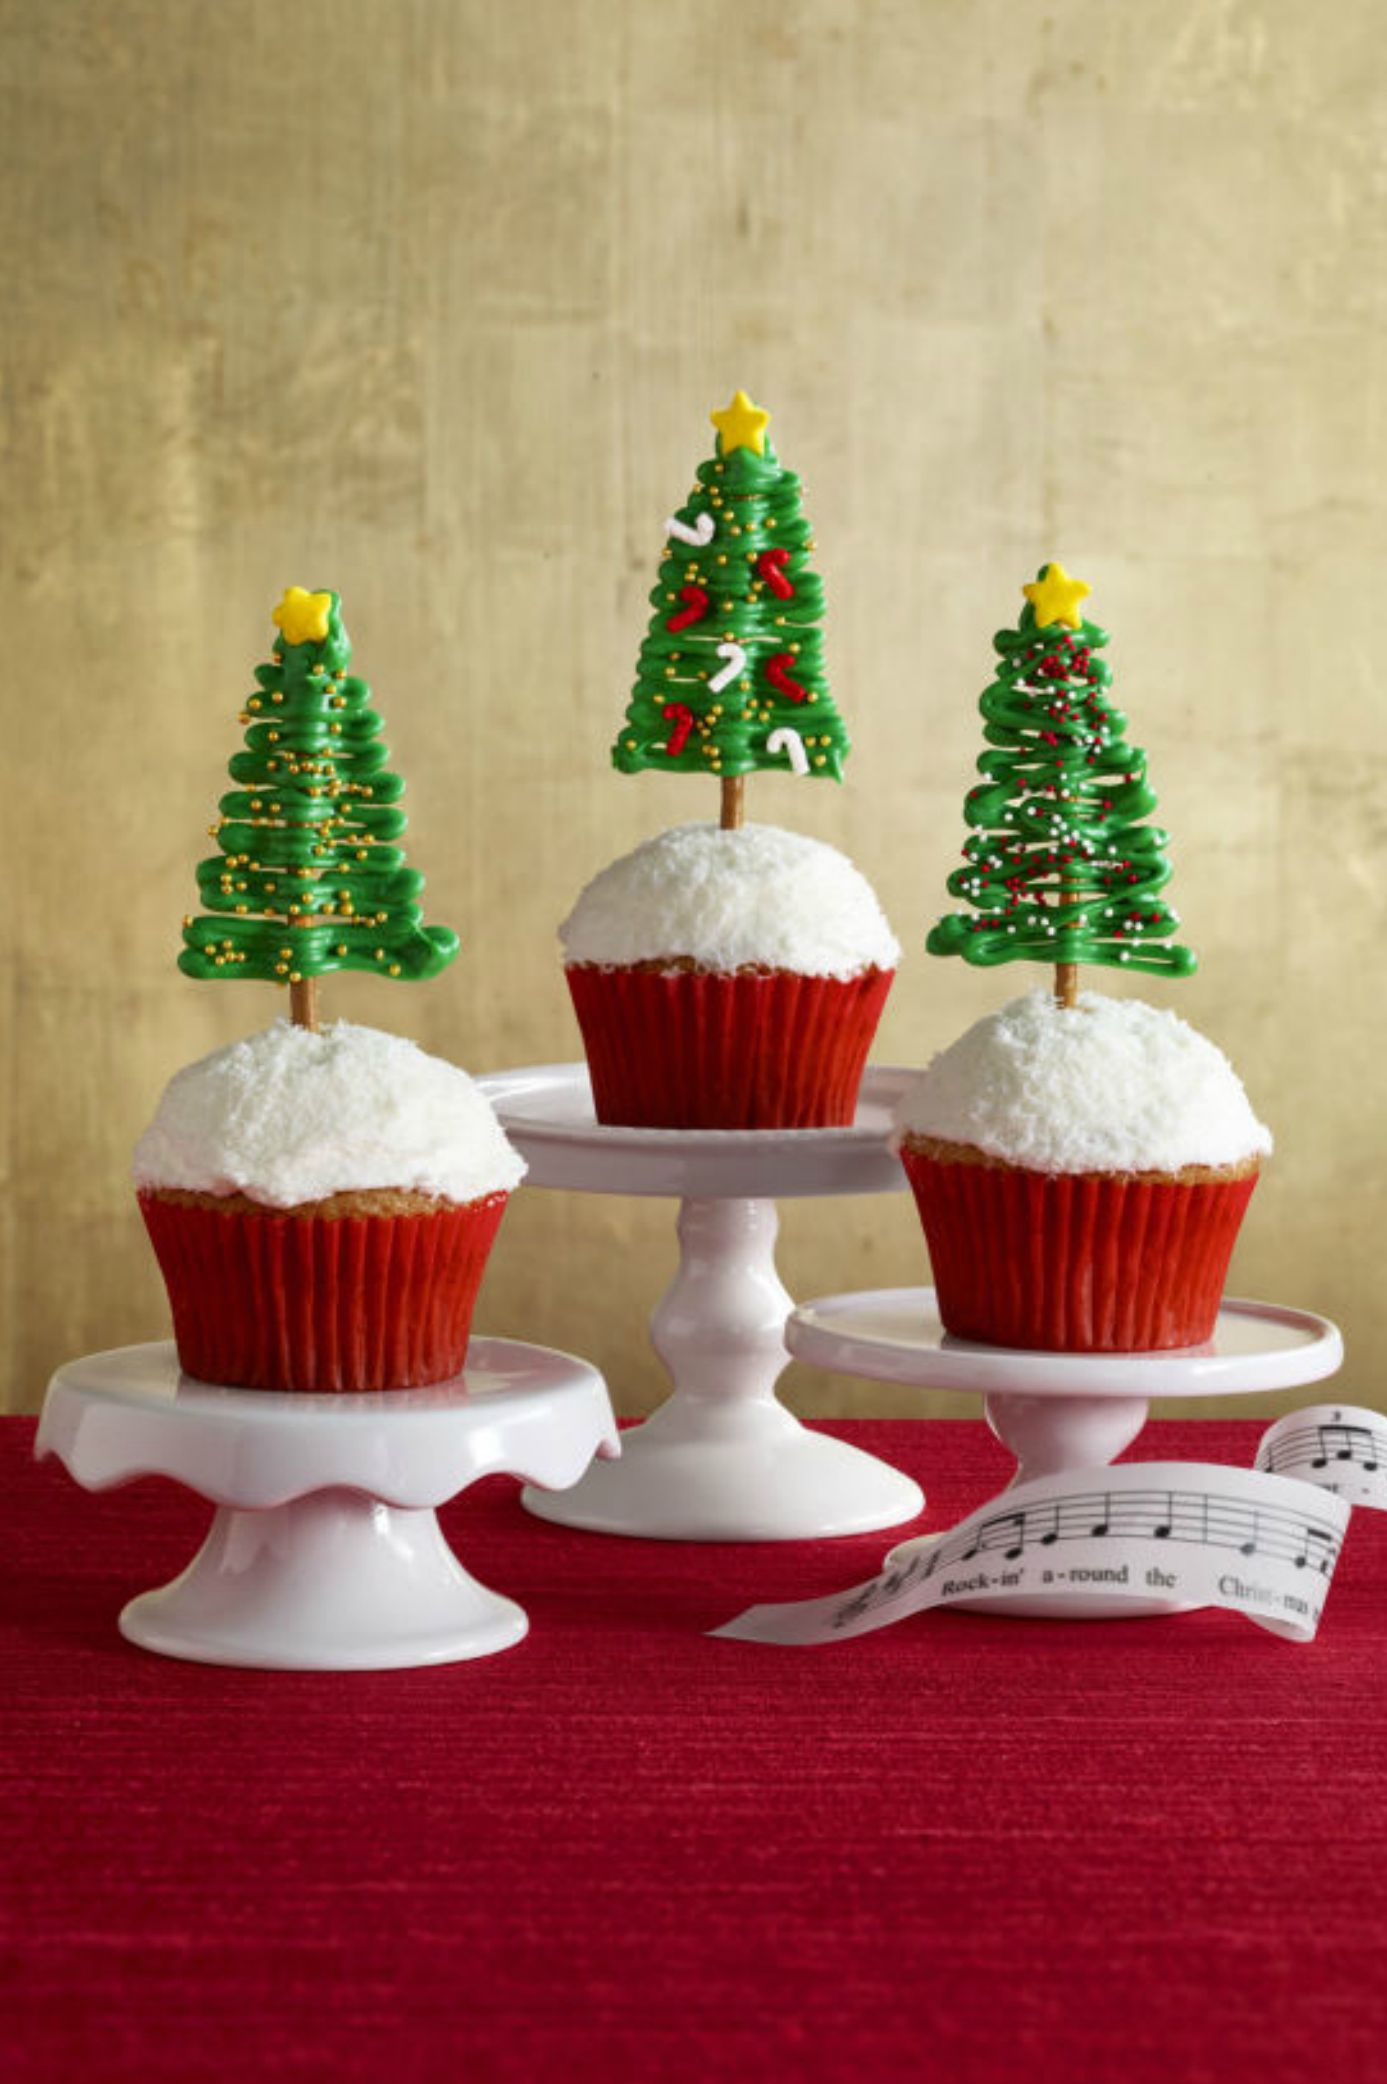 25 Cute Christmas Cupcake Ideas Easy Recipes And Decorating Tips